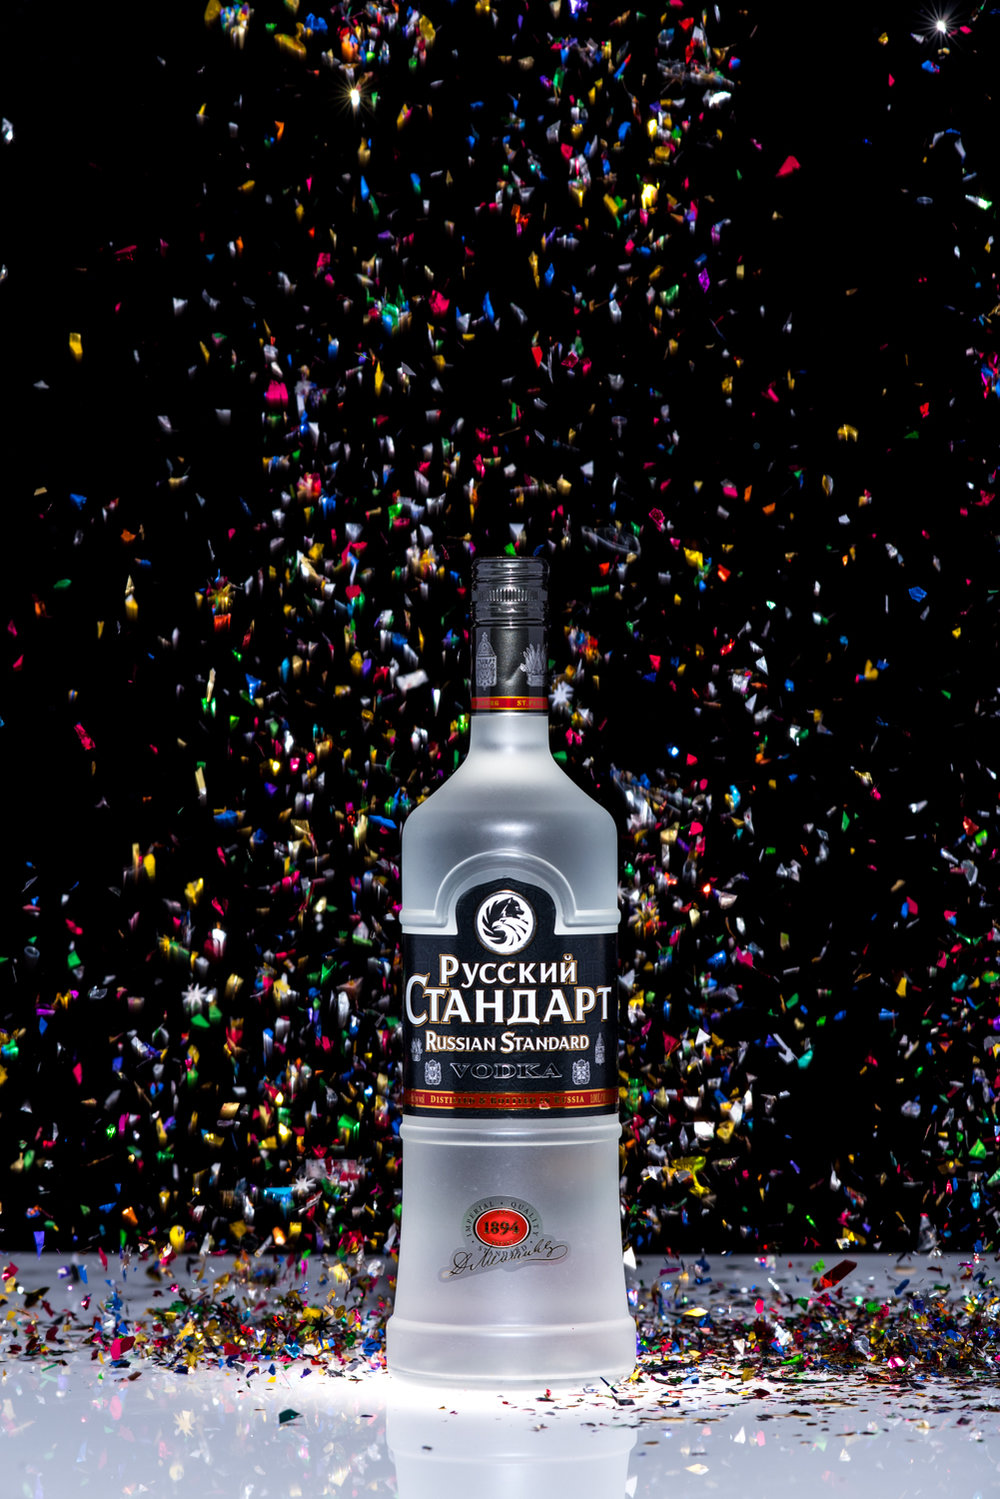 Russian Standard Vodka, Social Media Photography